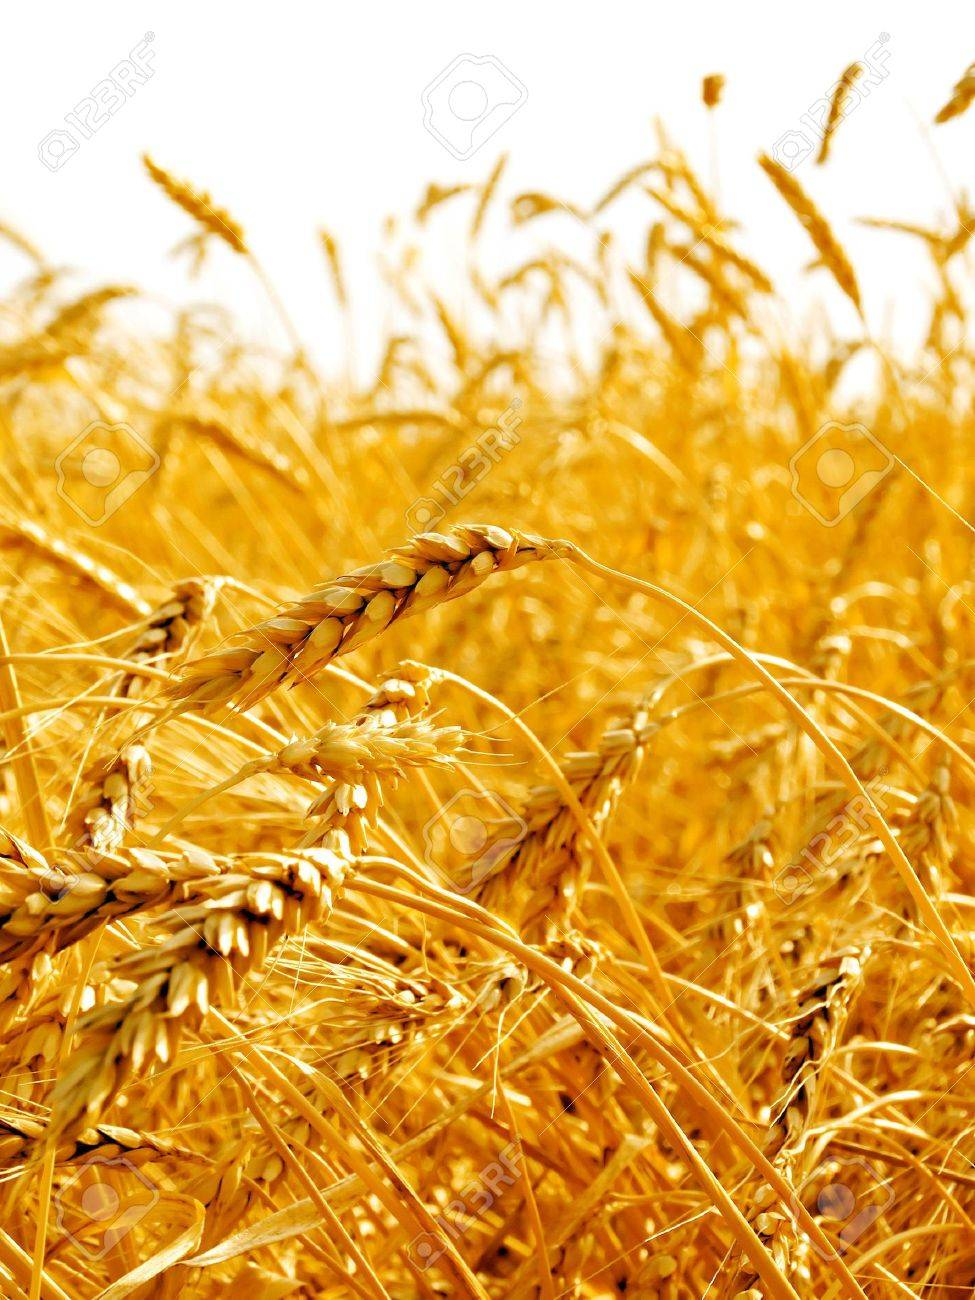 Wheat ears isolated on white background. Stock Photo - 7153576